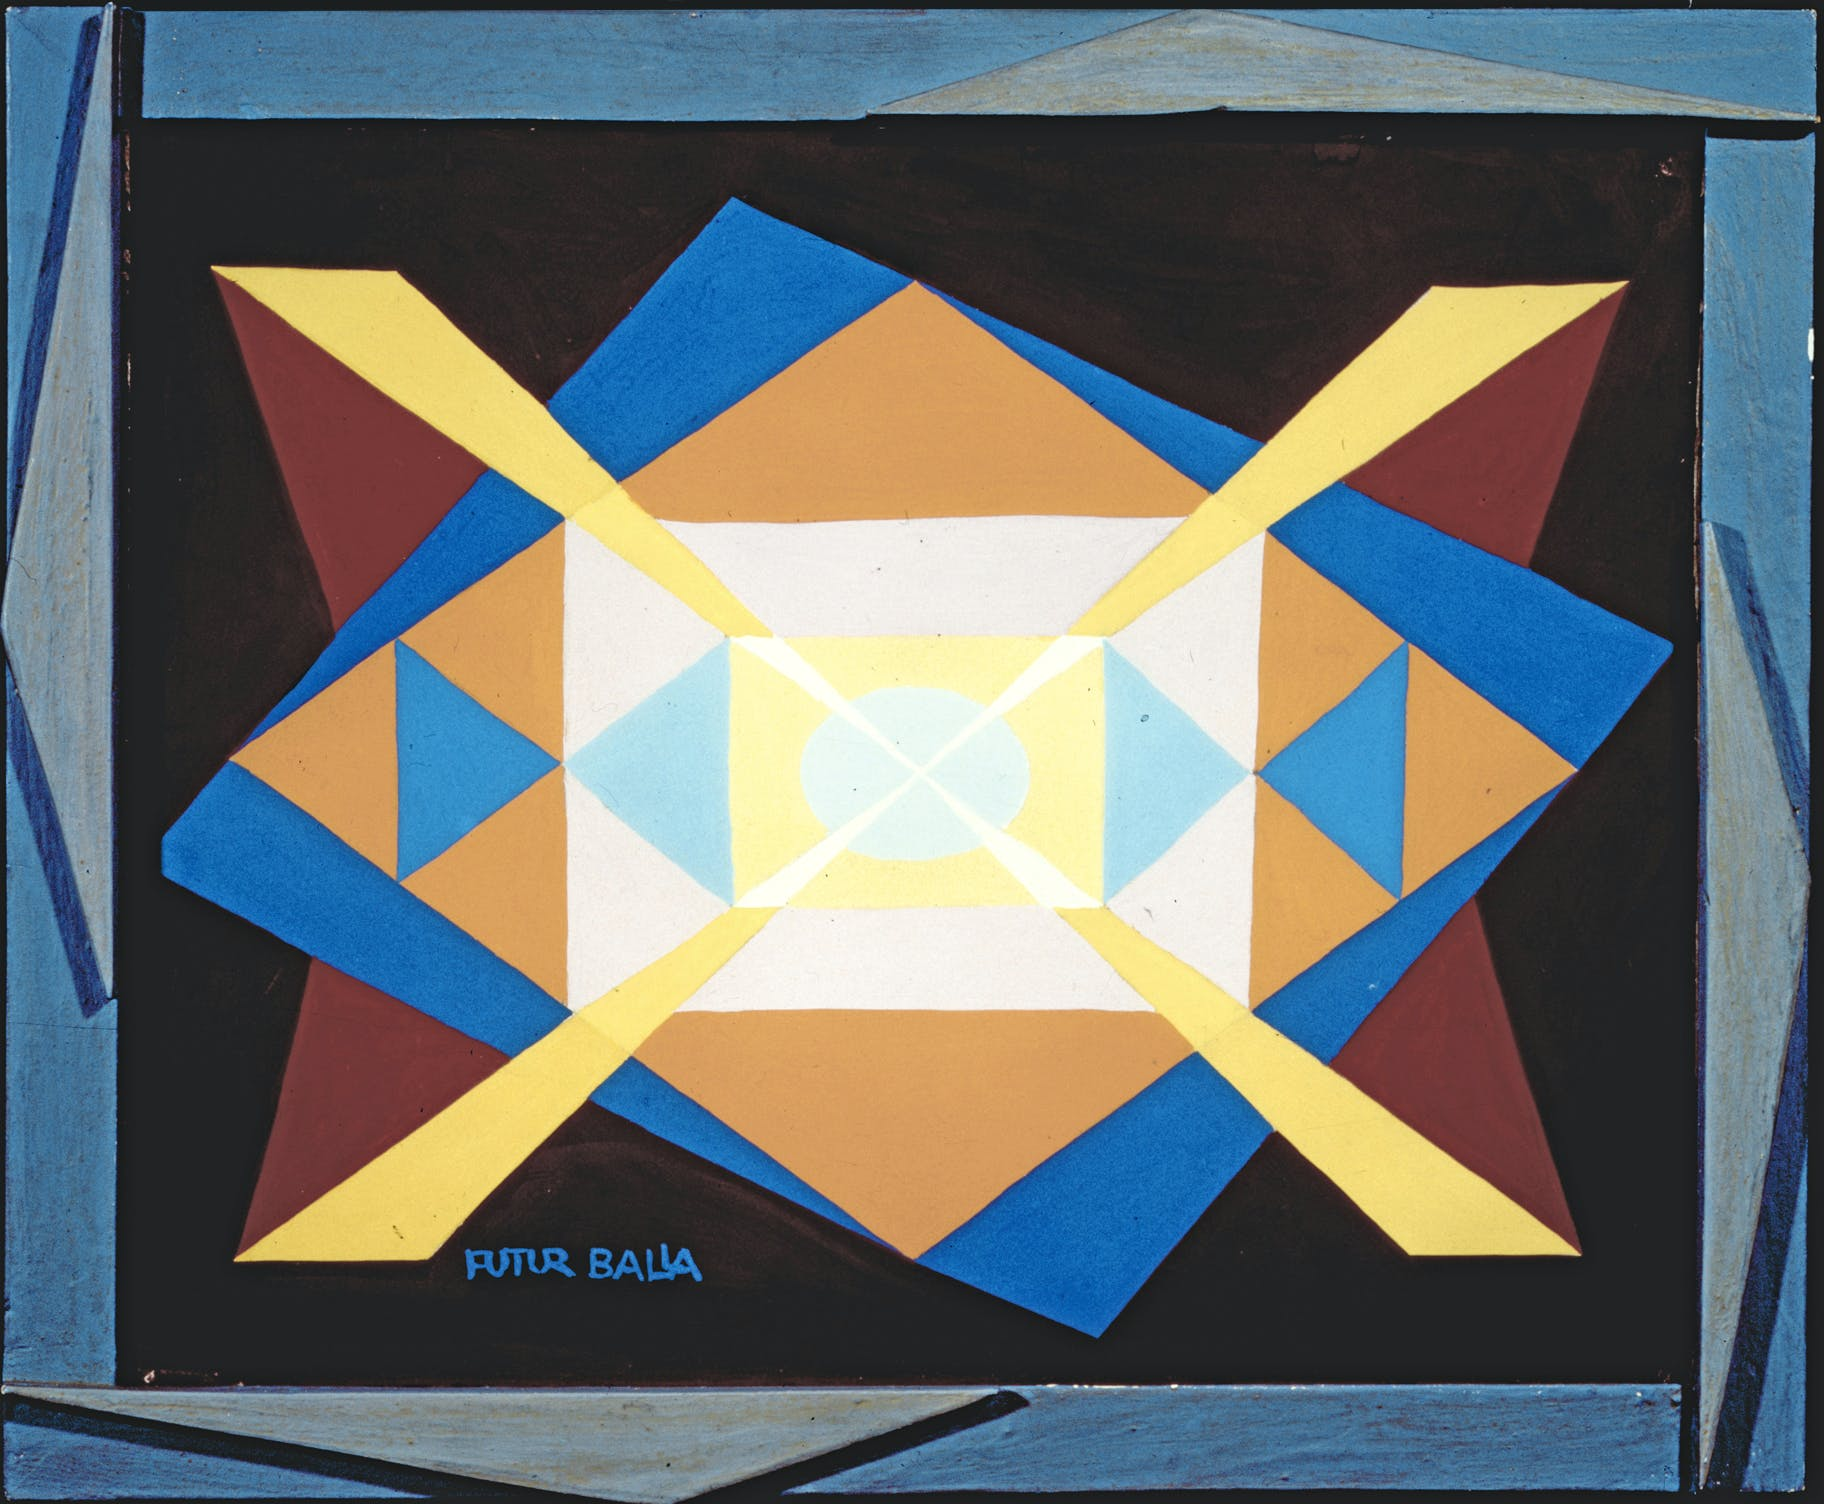 Expansion+Light (1930), Giacomo Balla. Courtesy The Biagiotti Cigna Collection